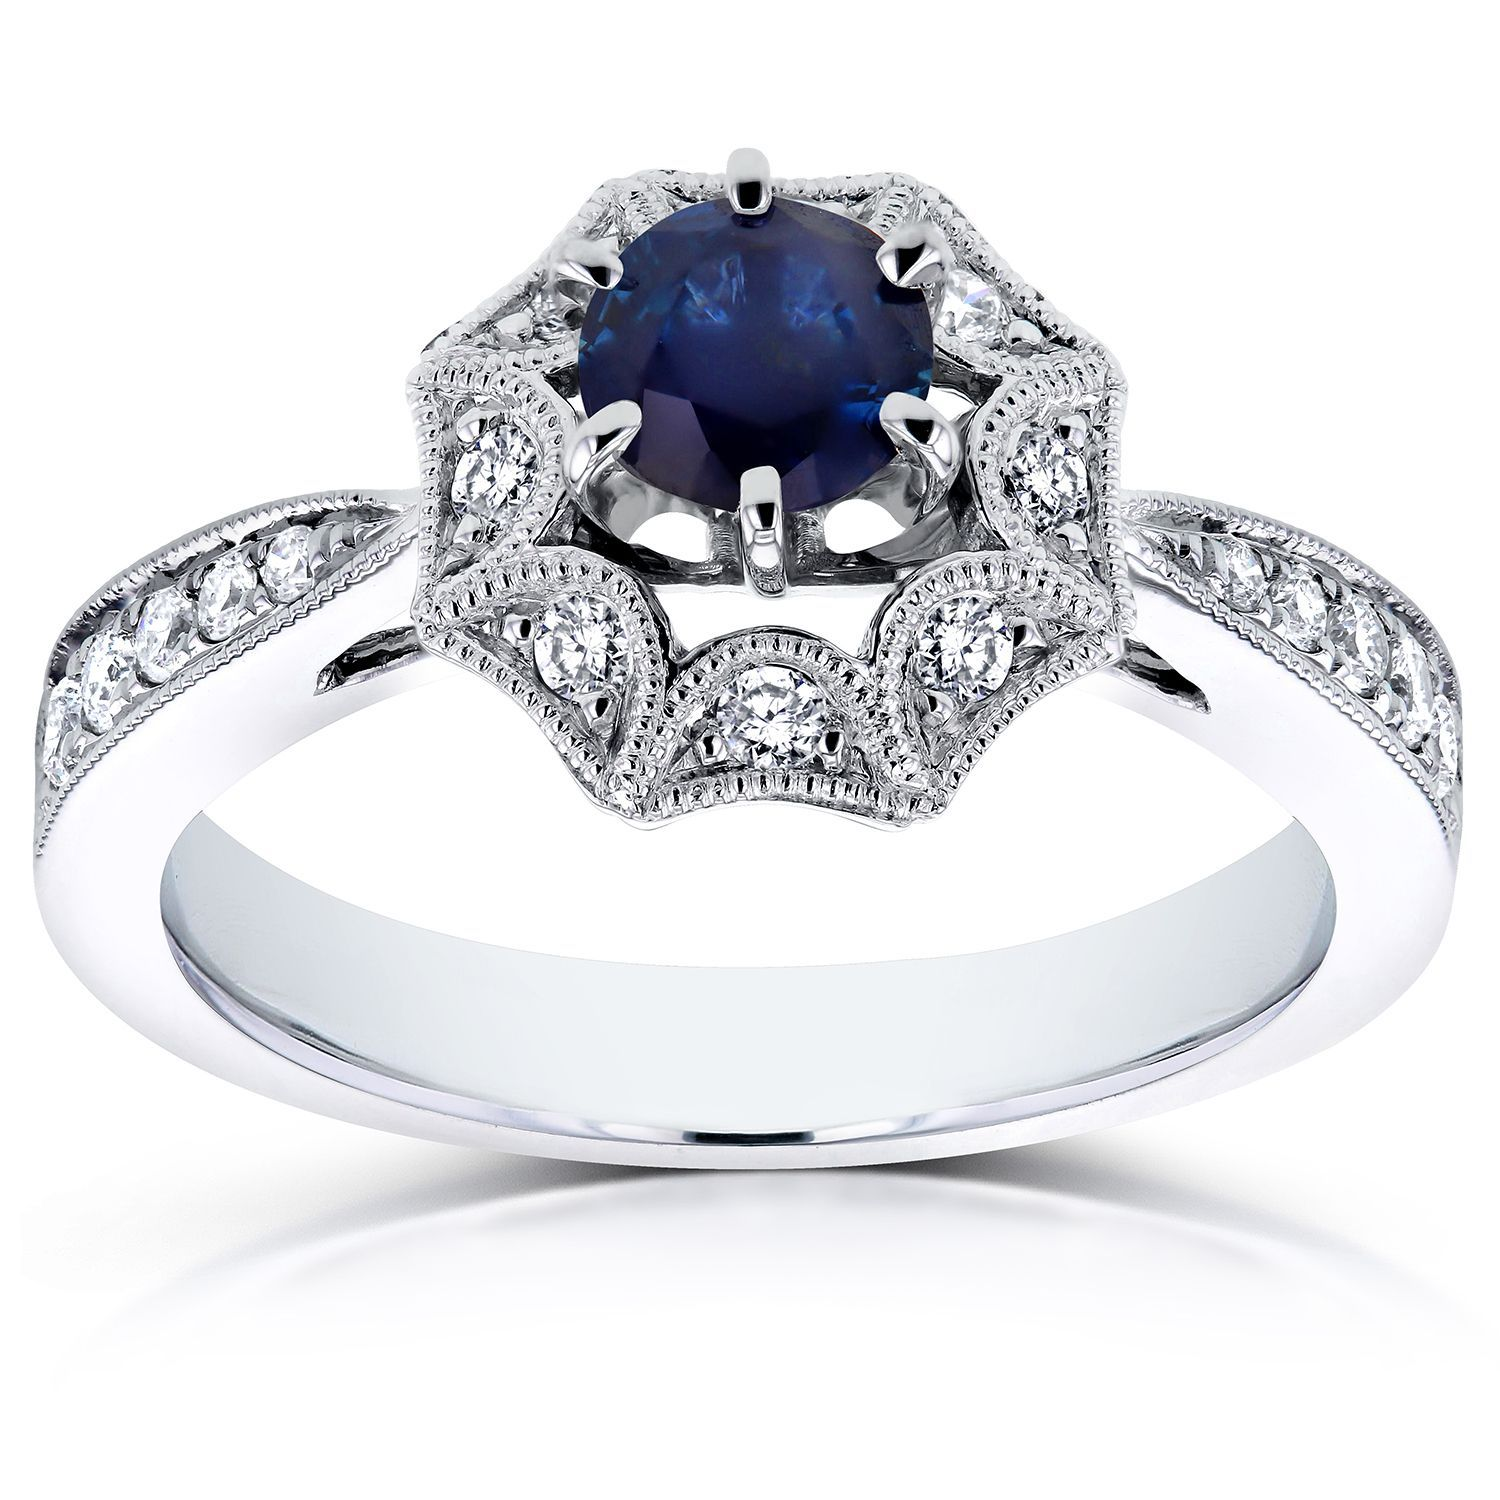 Annello by Kobelli 14k White Gold Sapphire and 1/4ct TDW